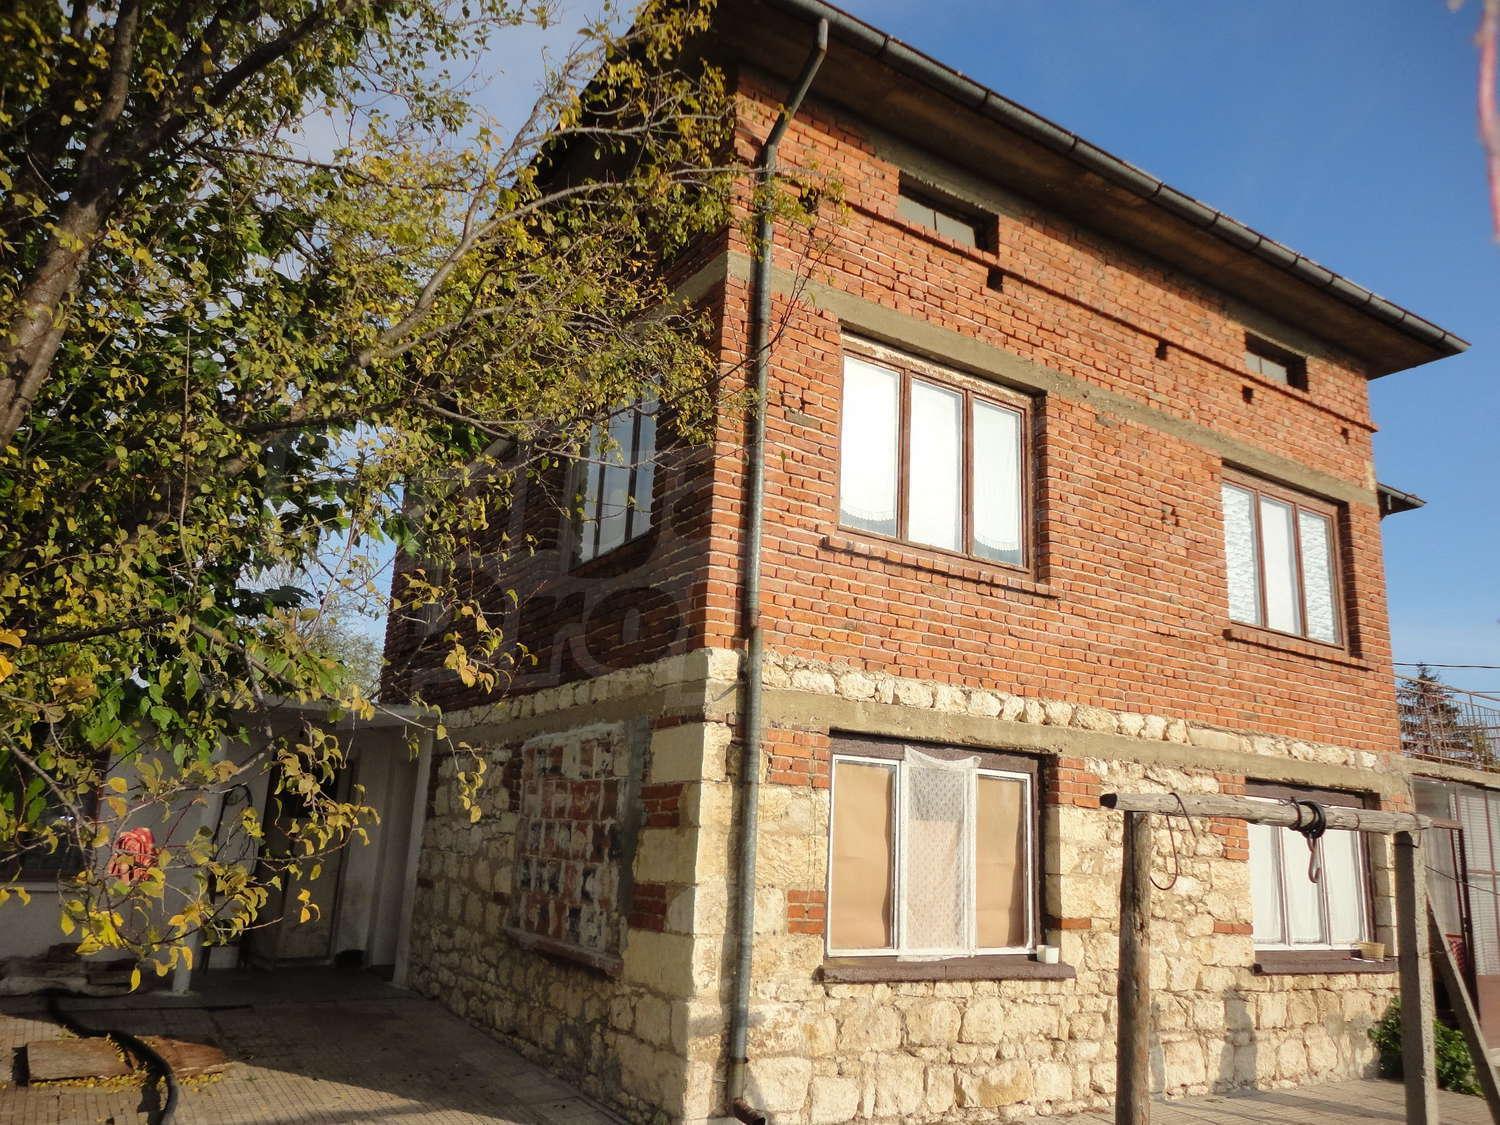 House for sale near stara zagora bulgaria nice rural for Big nice houses for sale